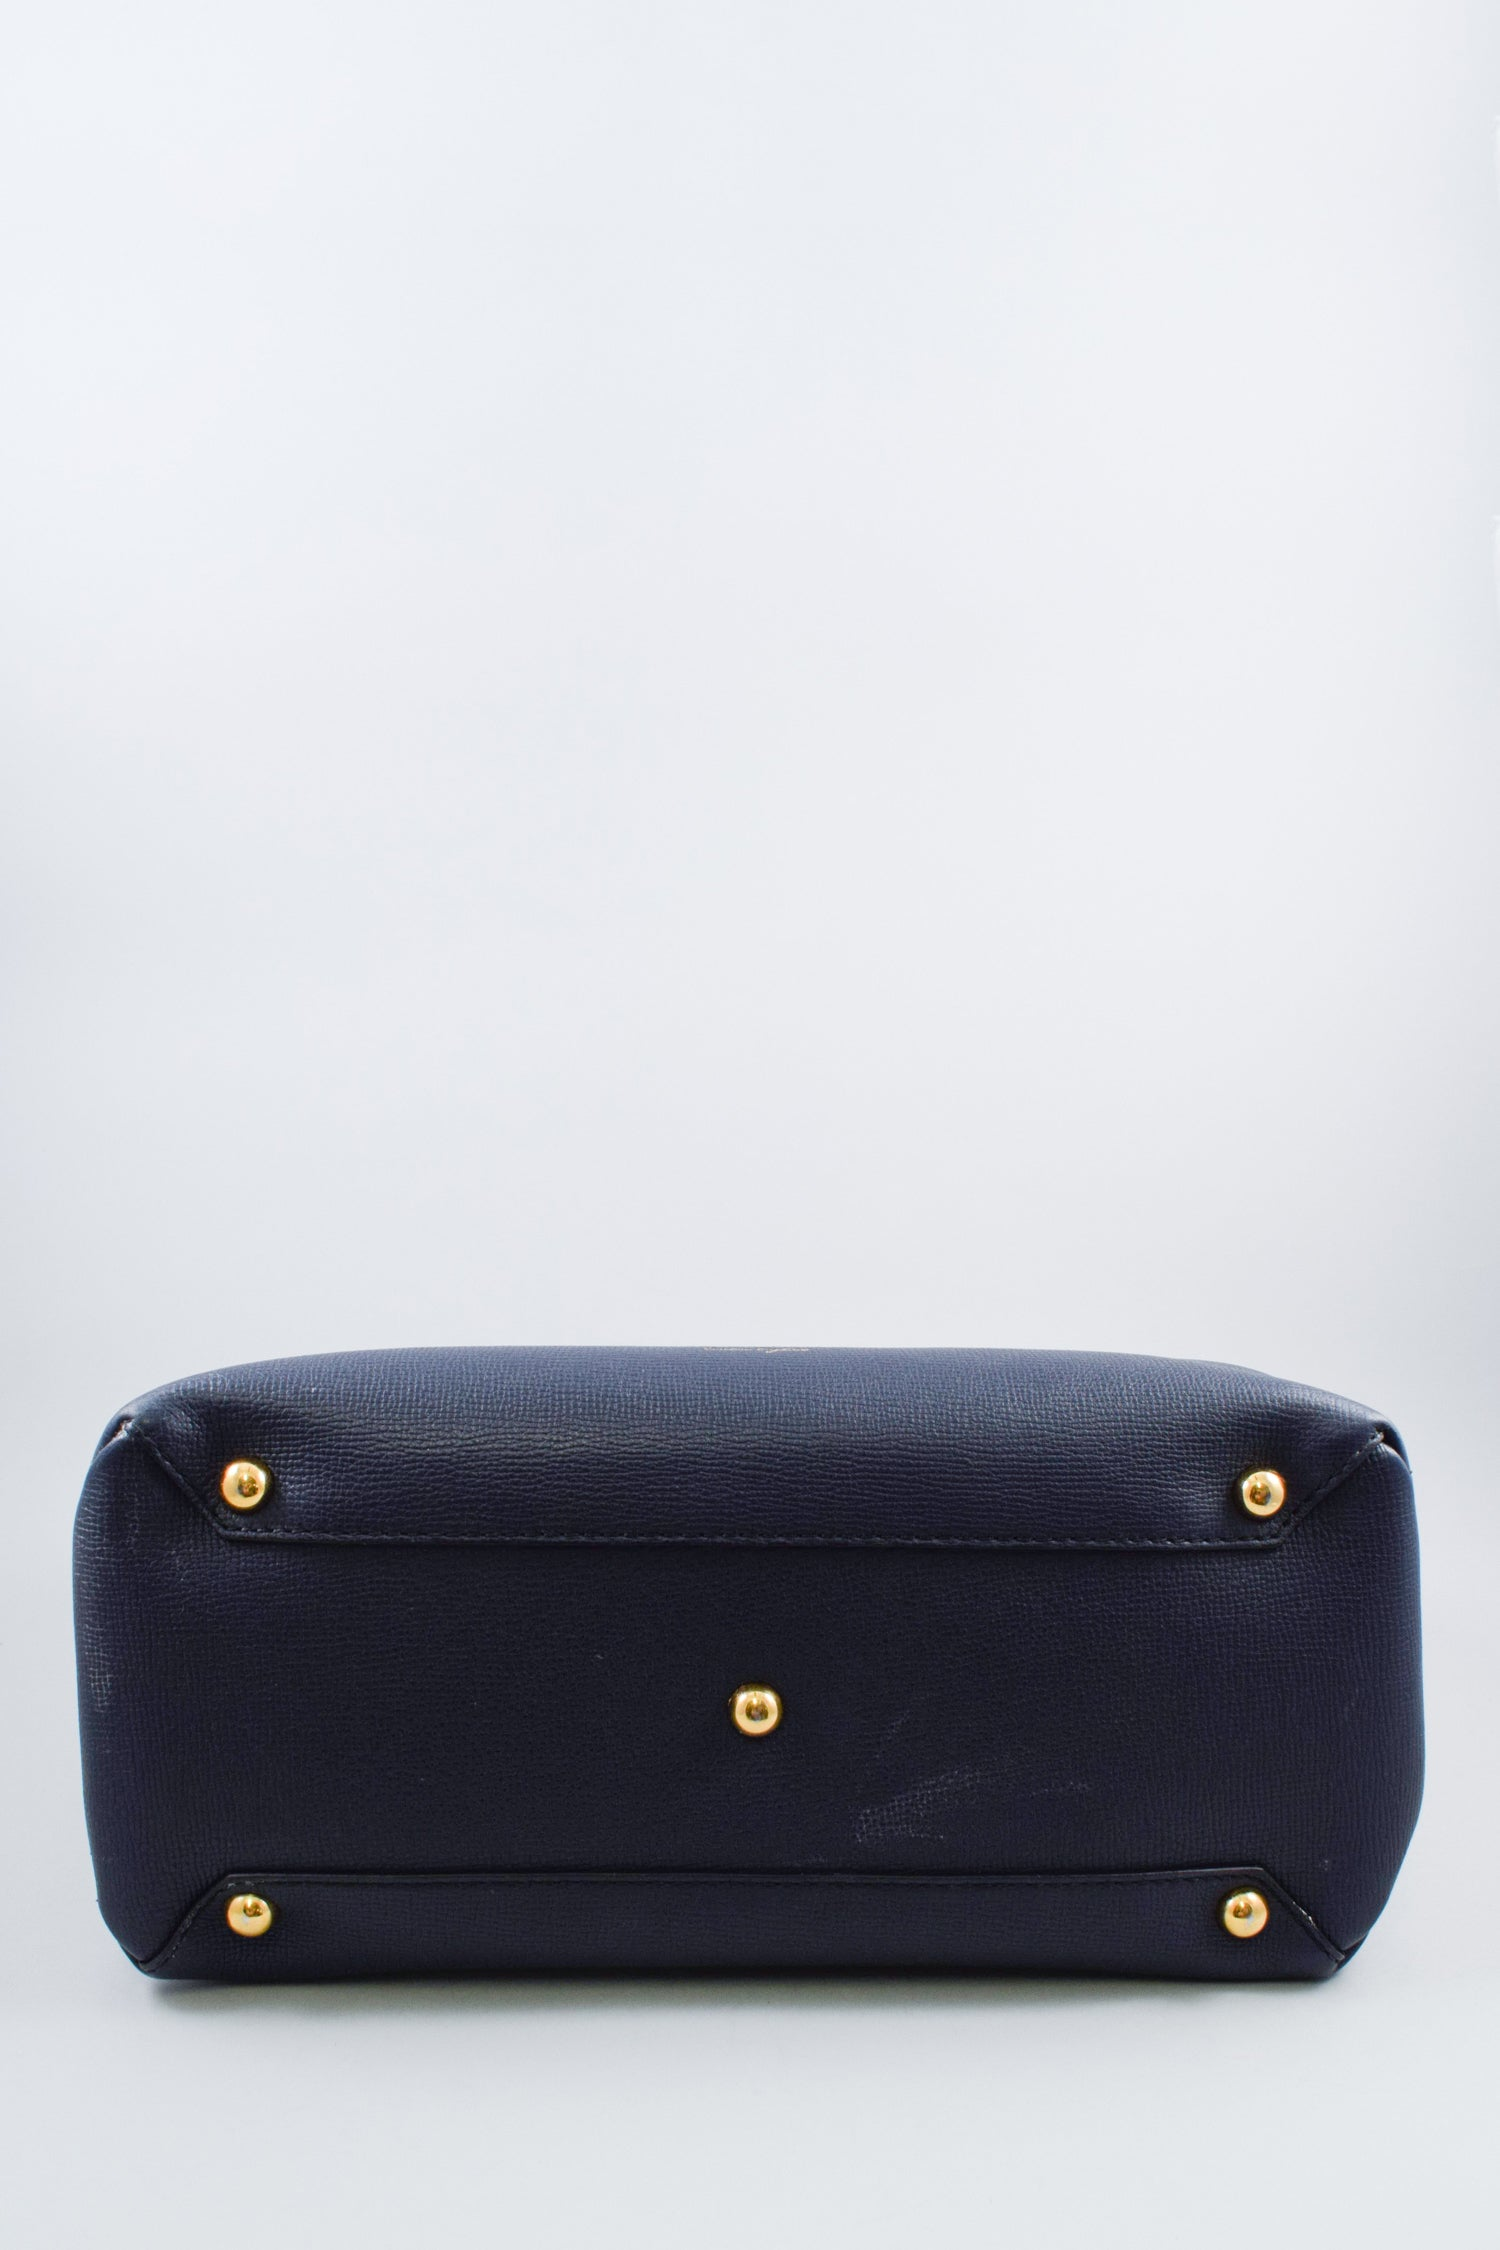 Burberry Navy House Check Flap Tote